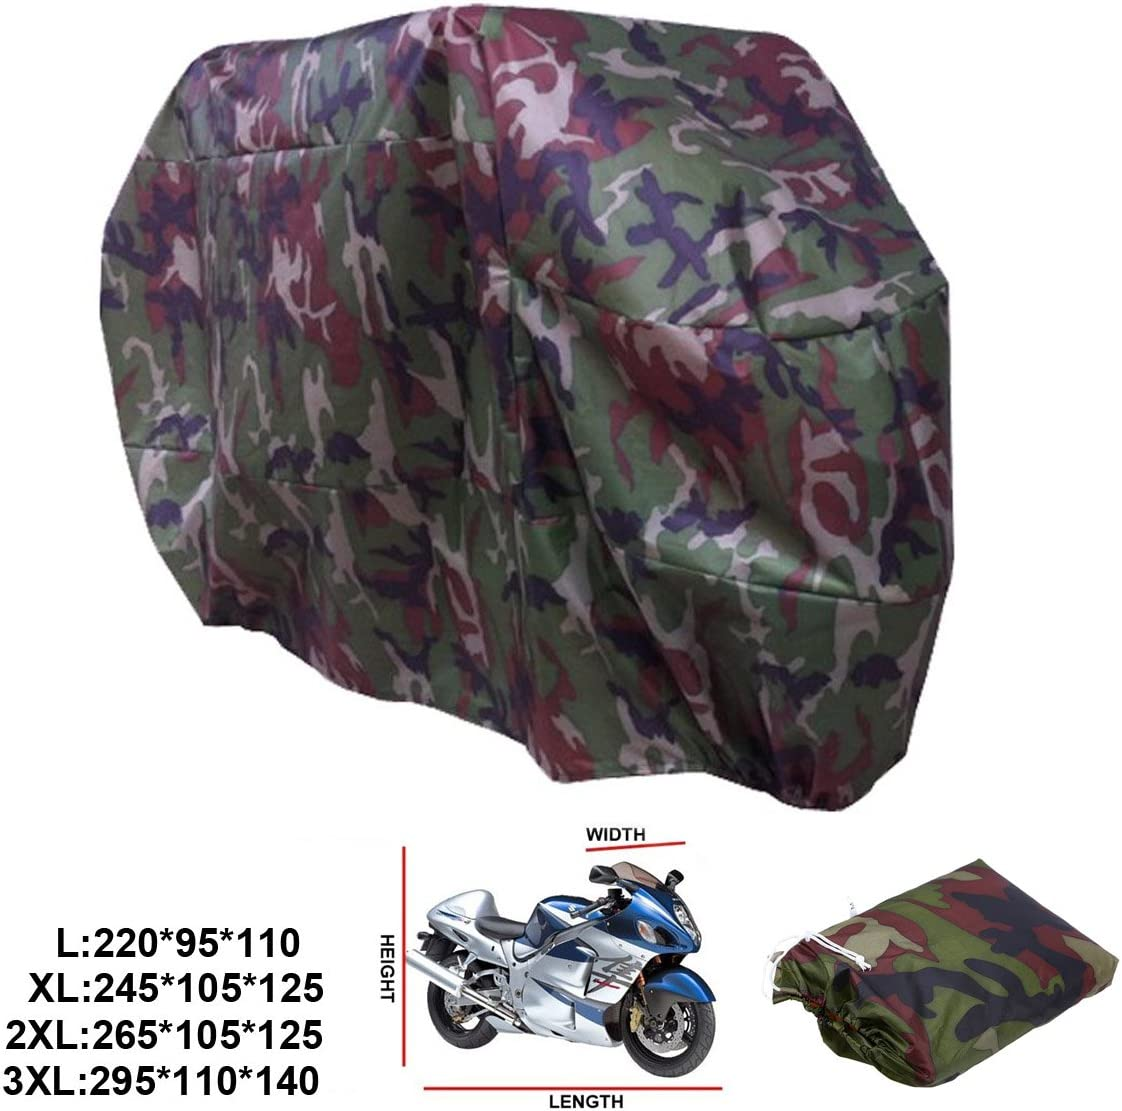 ANFTOP Waterproof Motorcycle Cover 2XL Camouflage Color UV Rain Protective Dustproof Breathable Scooter Motorbike Cover With Carry Bag Outdoor Cover XXL